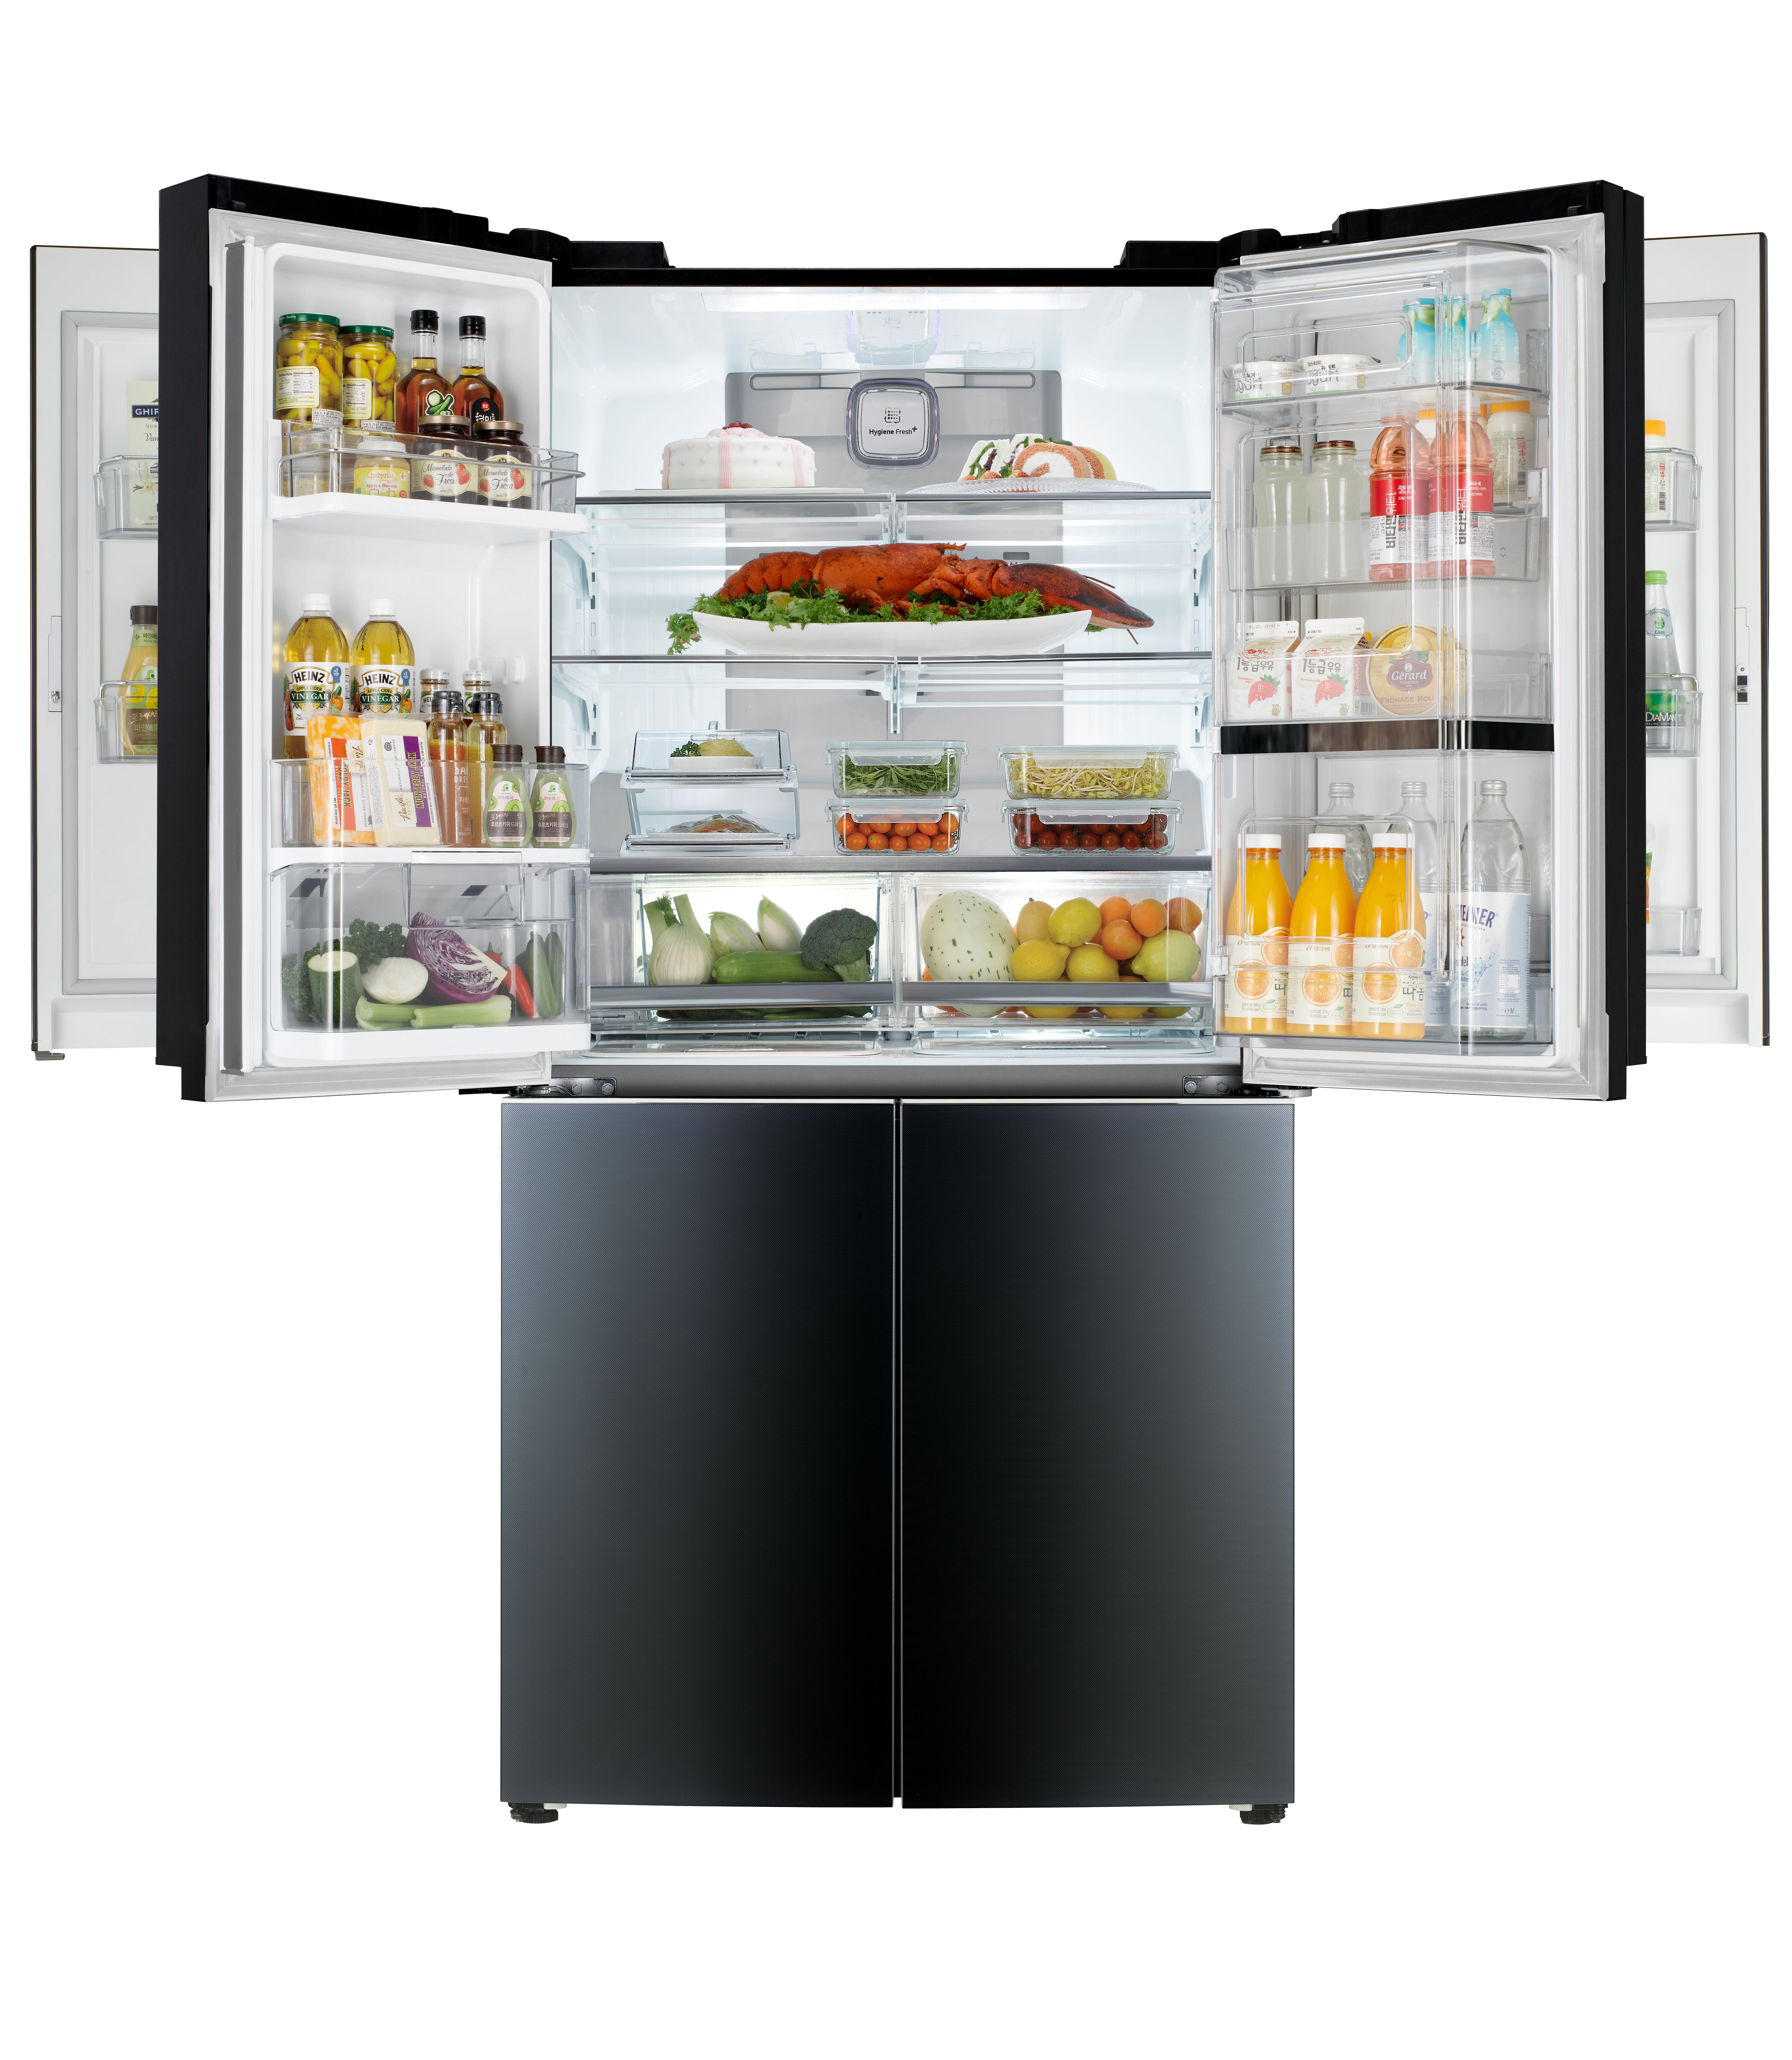 lg to unveil first mega capacity refrigerator with double door in door at ces 2015 lg newsroom. Black Bedroom Furniture Sets. Home Design Ideas